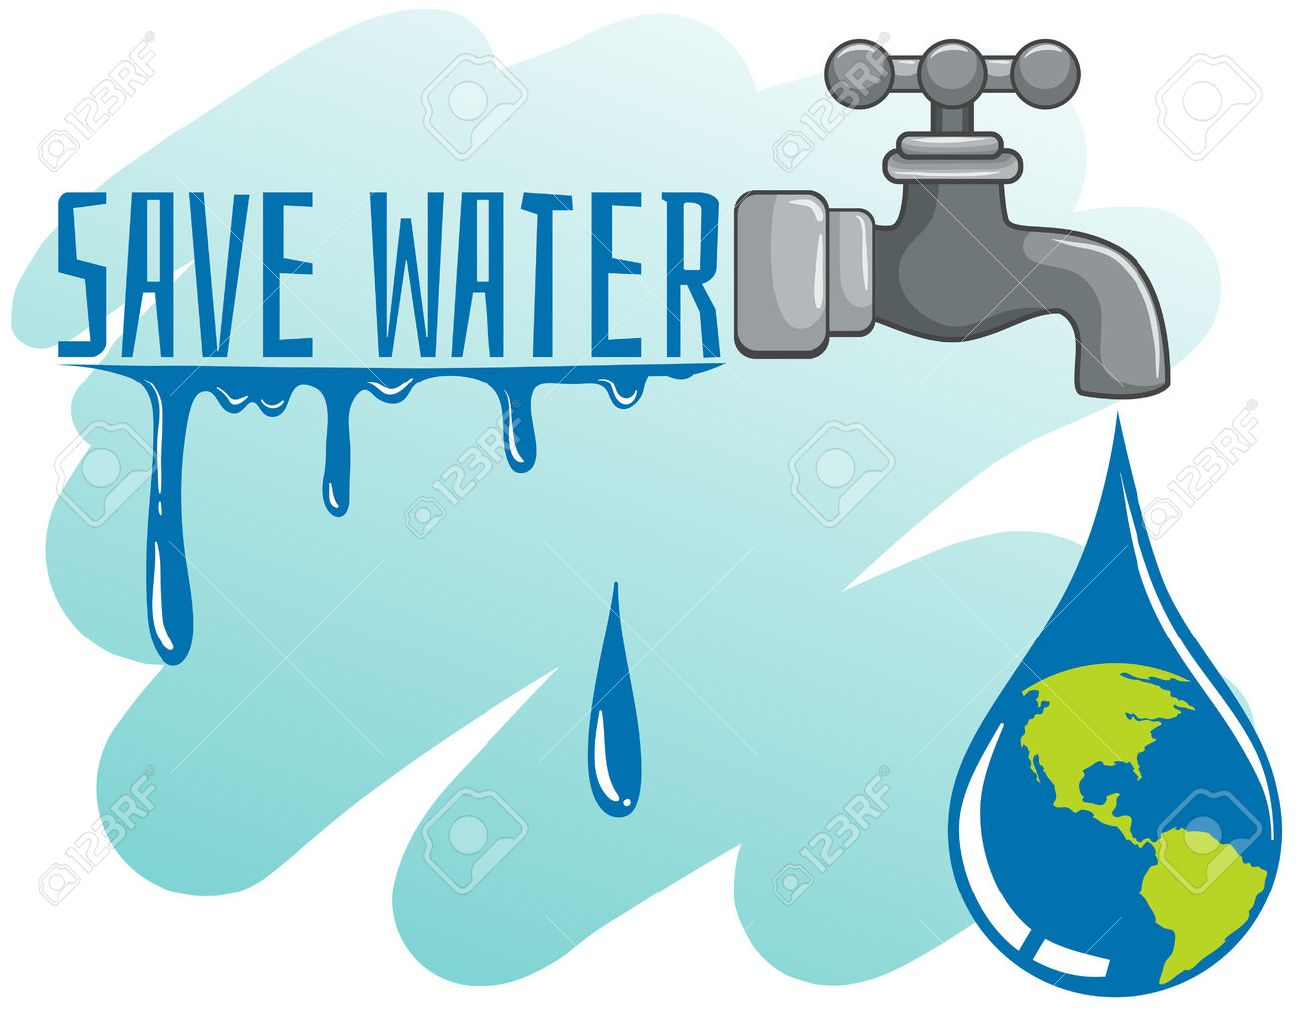 Save Water Theme With Earth And Faucet Illustration Royalty Free Cliparts Vectors And Stock Illustration Image 48319254